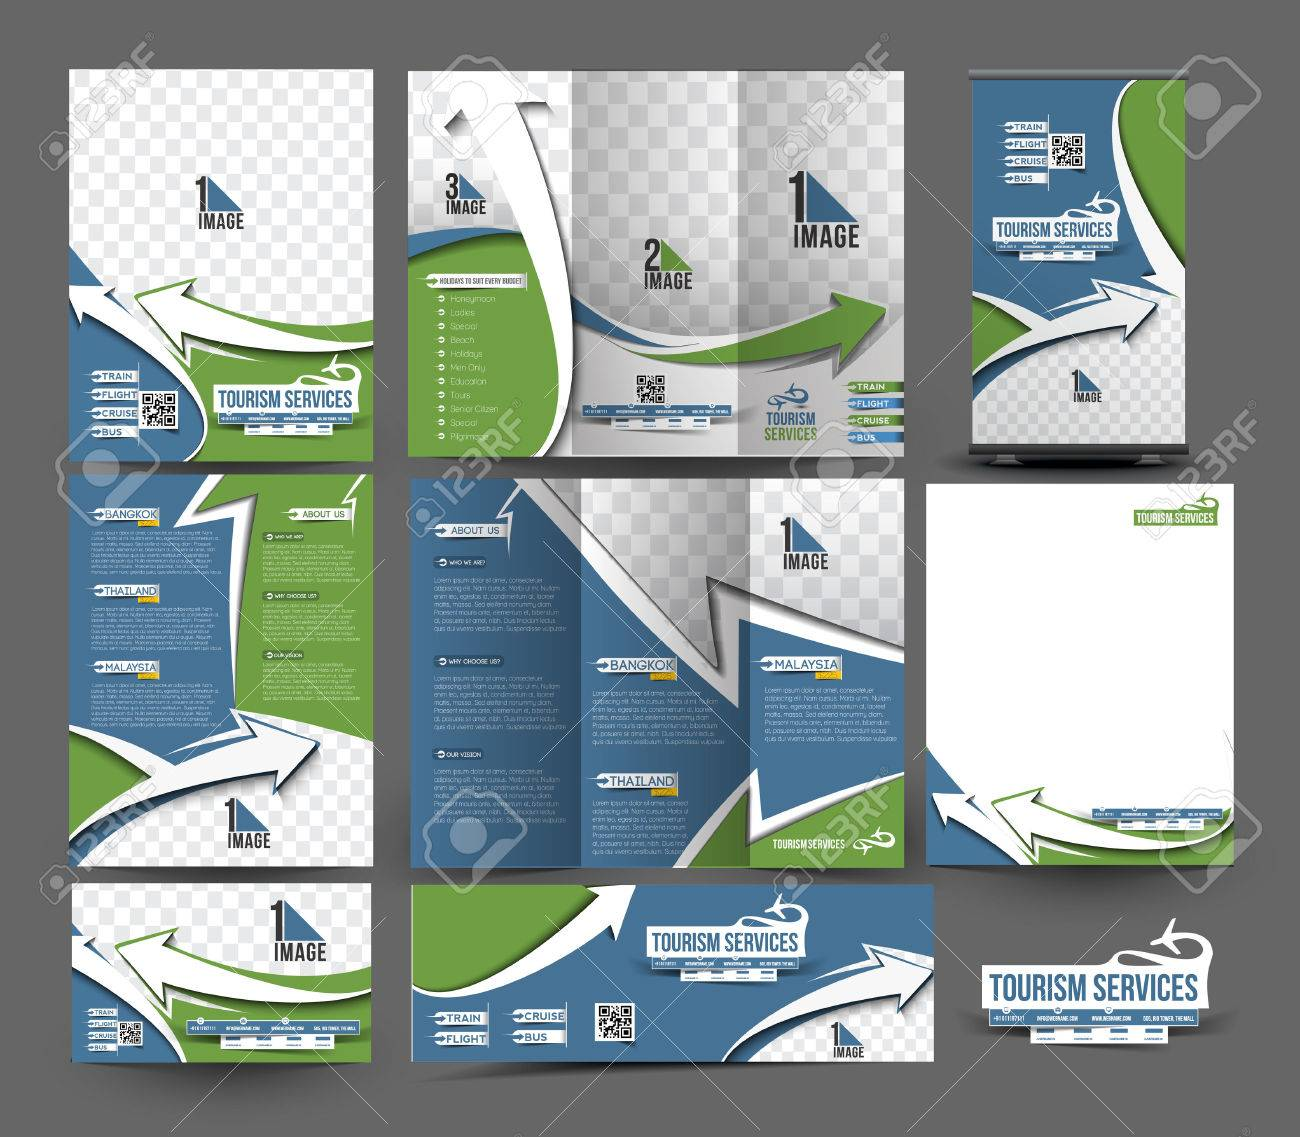 Travel Agent Business Stationery Set Template - 41834308